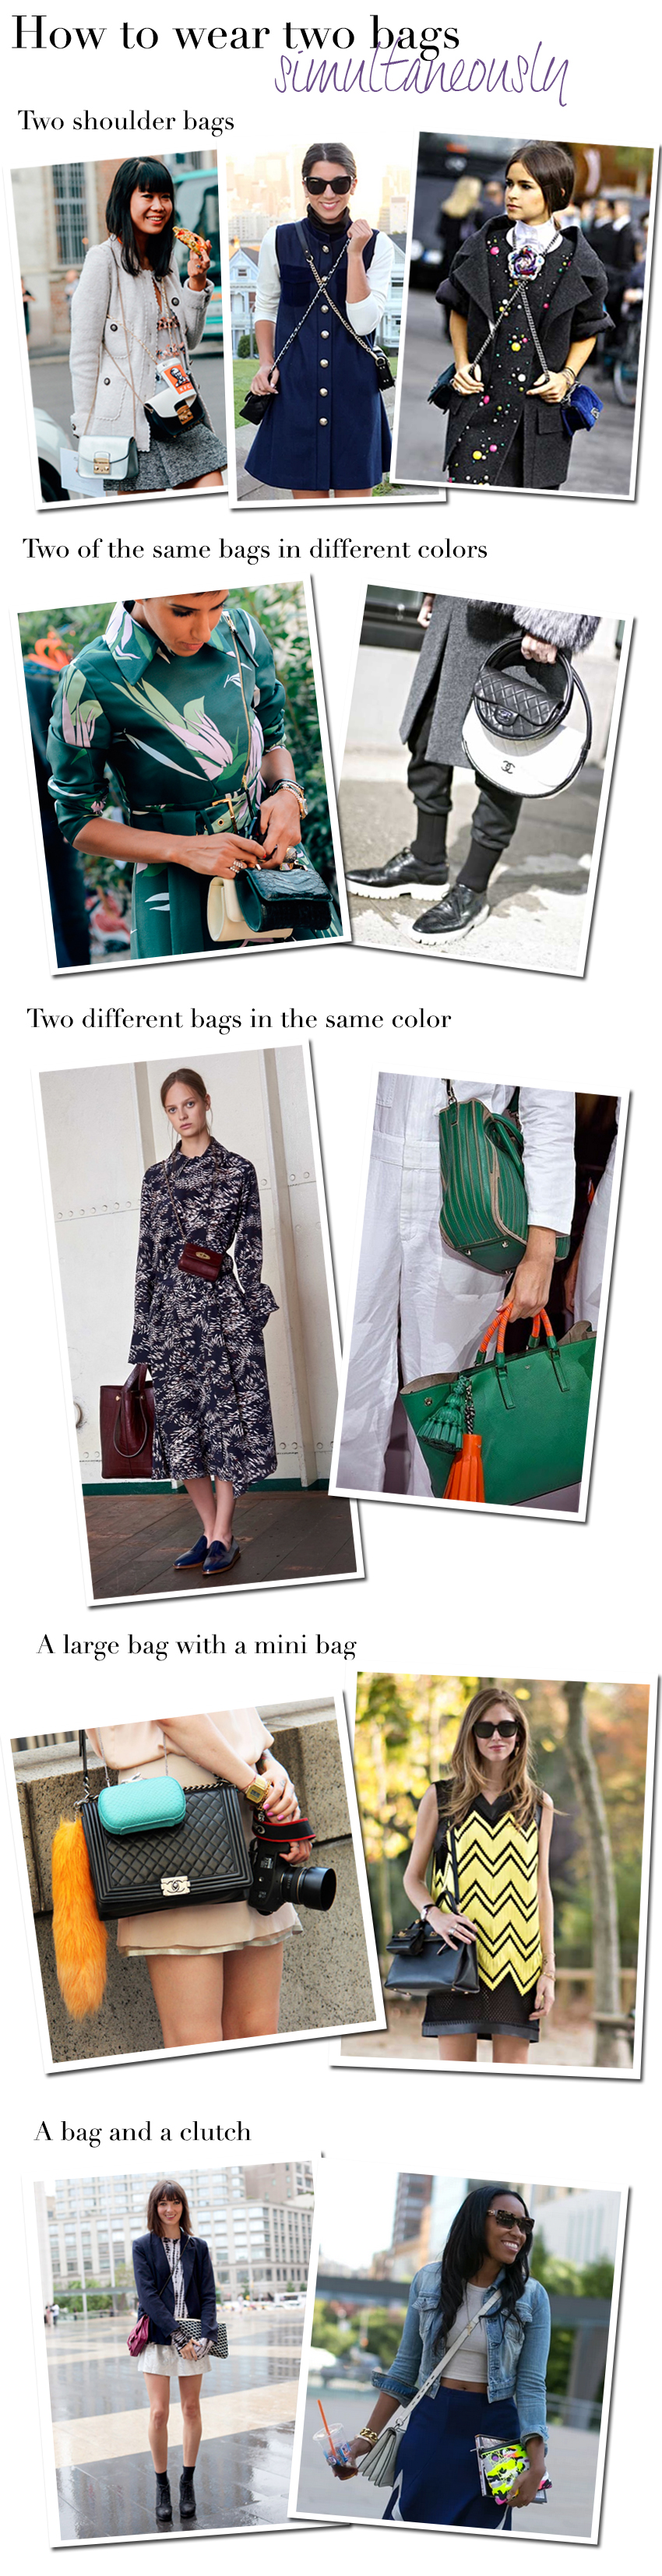 how to wear two bags simultaneously